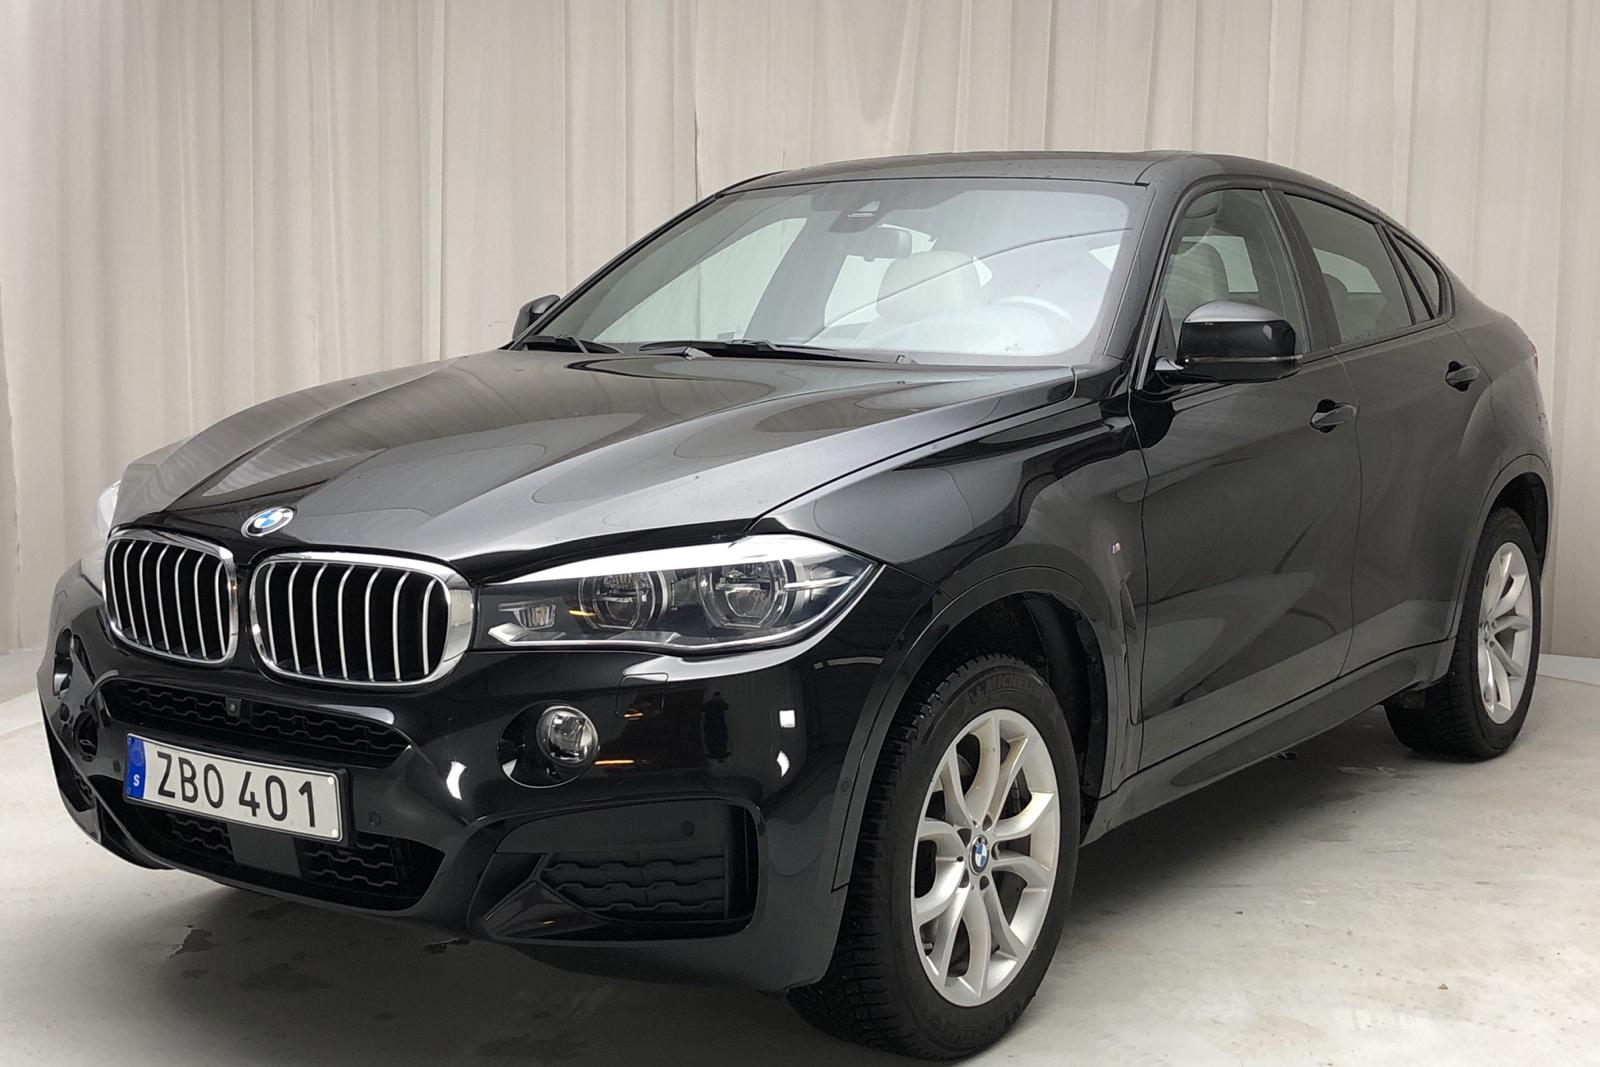 BMW X6 xDrive 40d, F16 (313hk) - 87 970 km - Automatic - black - 2018